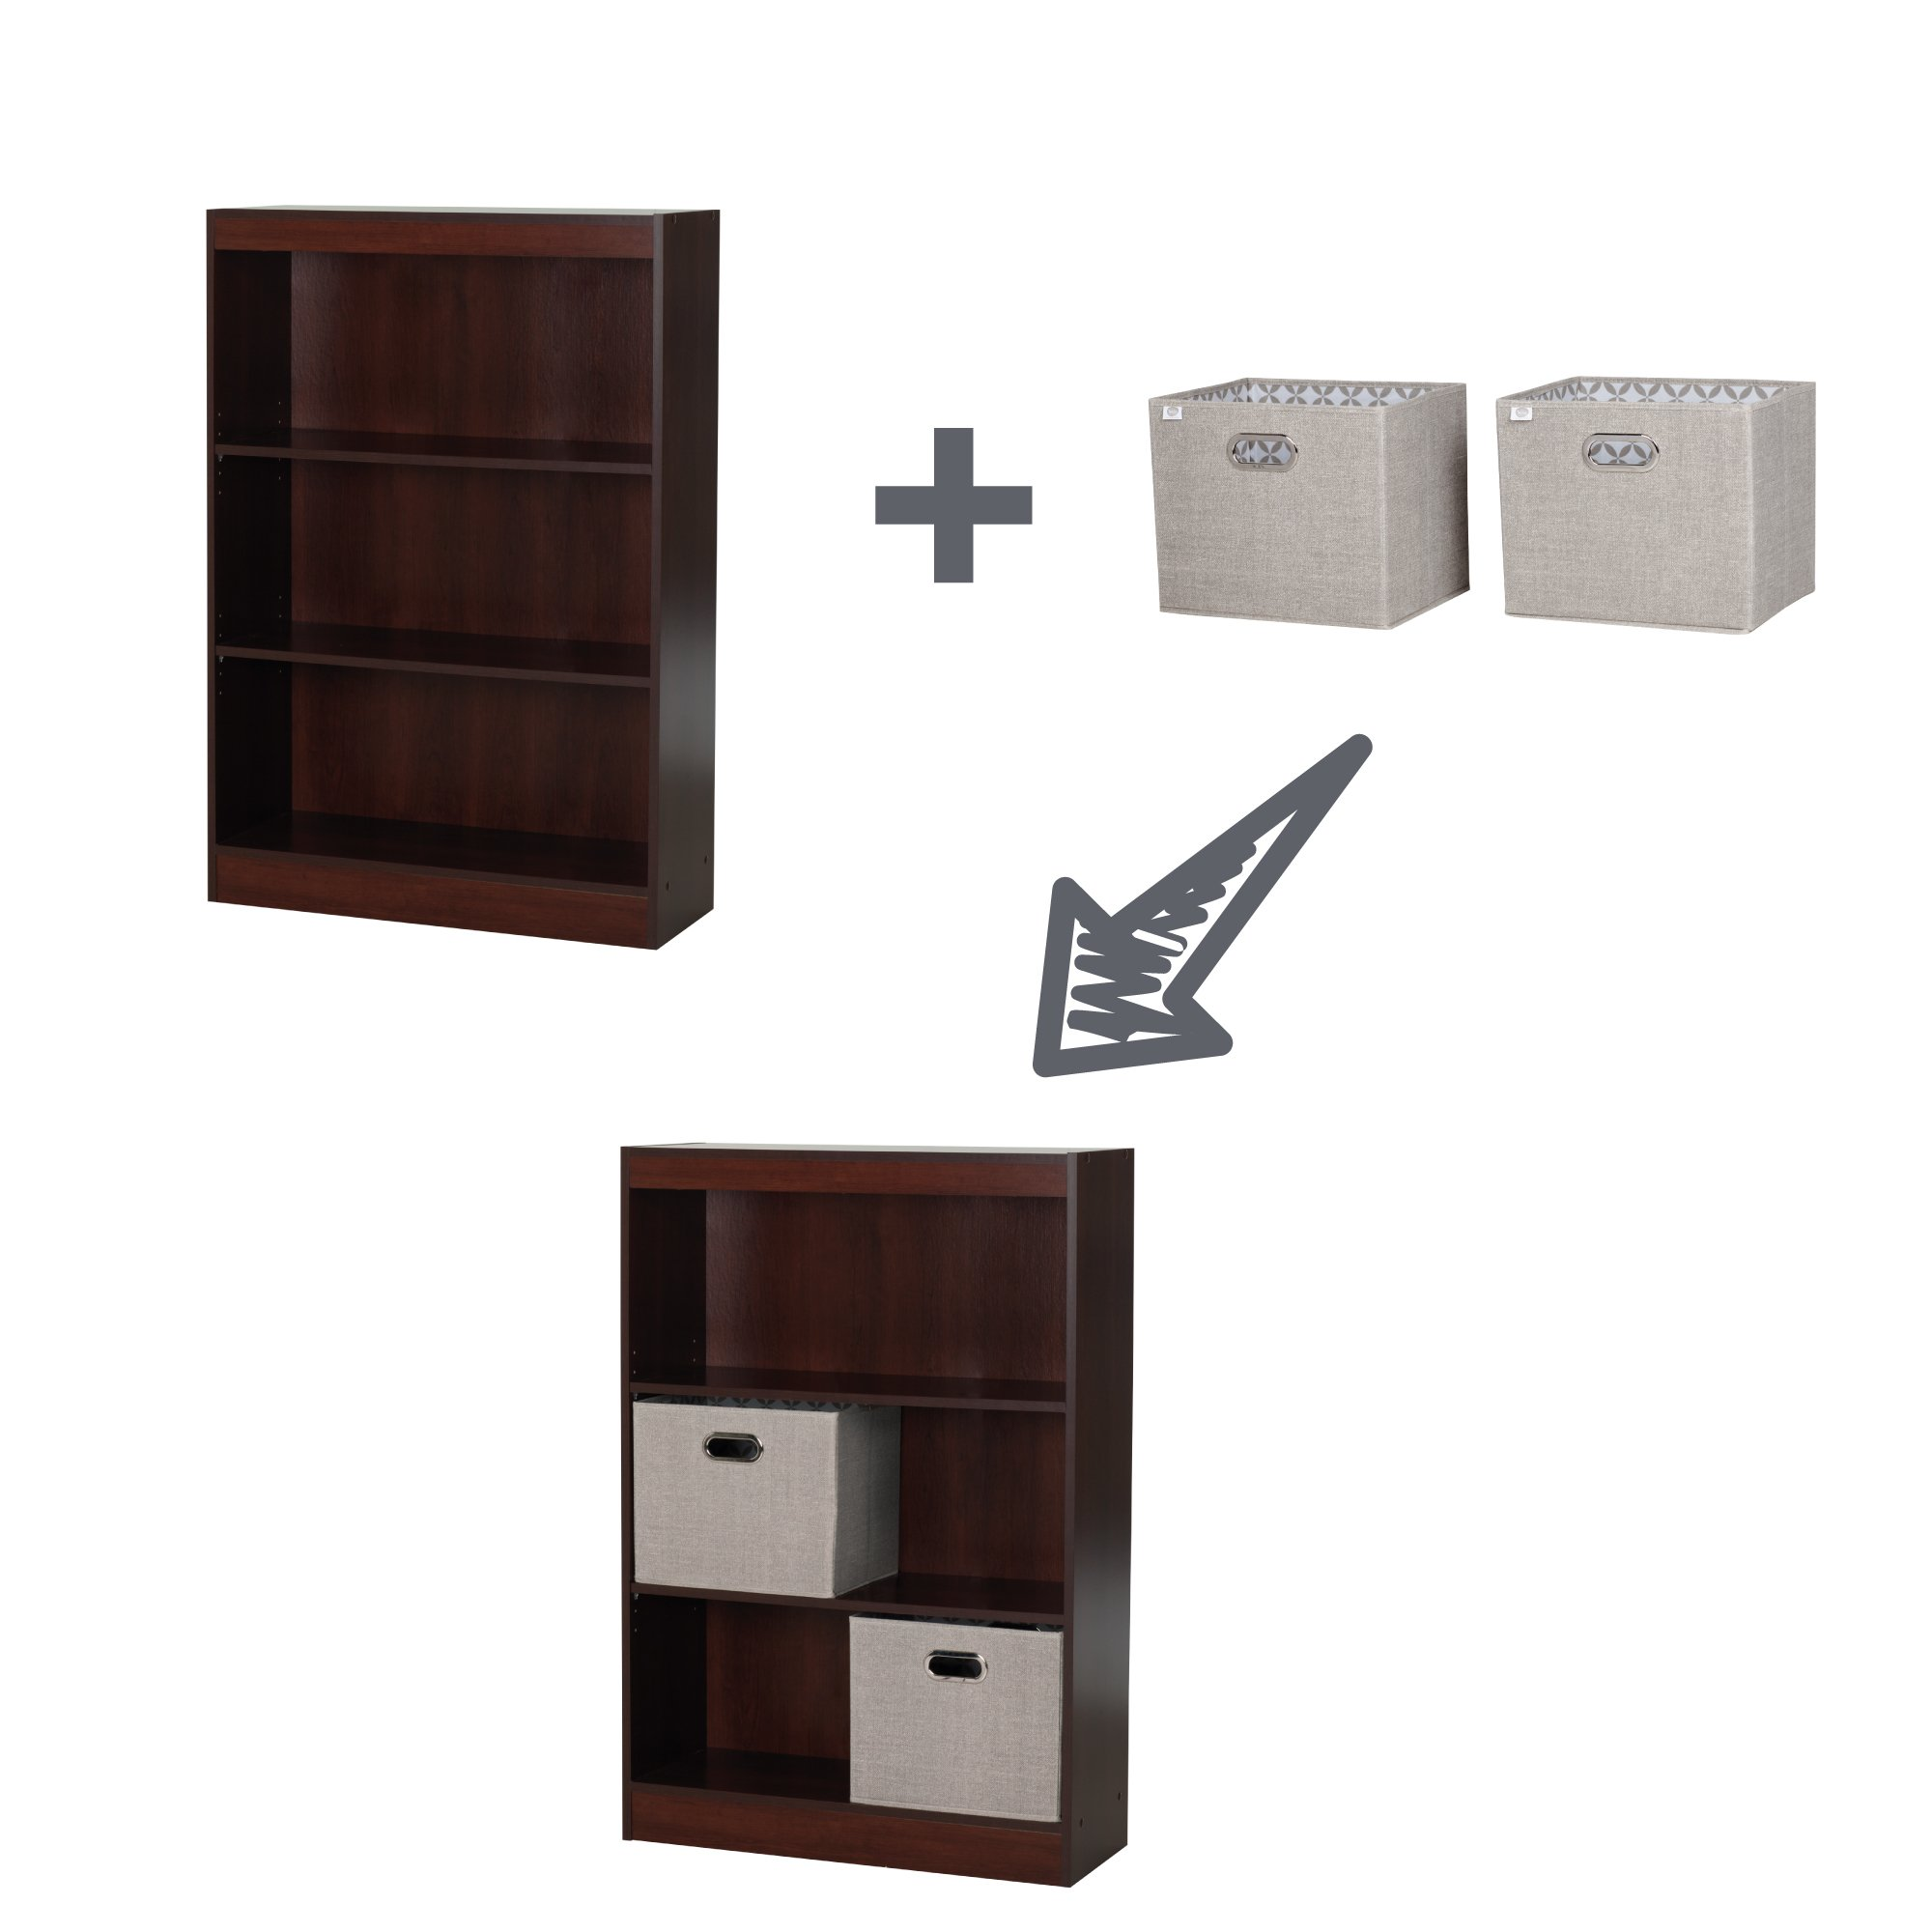 South Shore Axess 3-Shelf Bookcase with 2 Fabric Storage Baskets, Pure White by South Shore (Image #5)